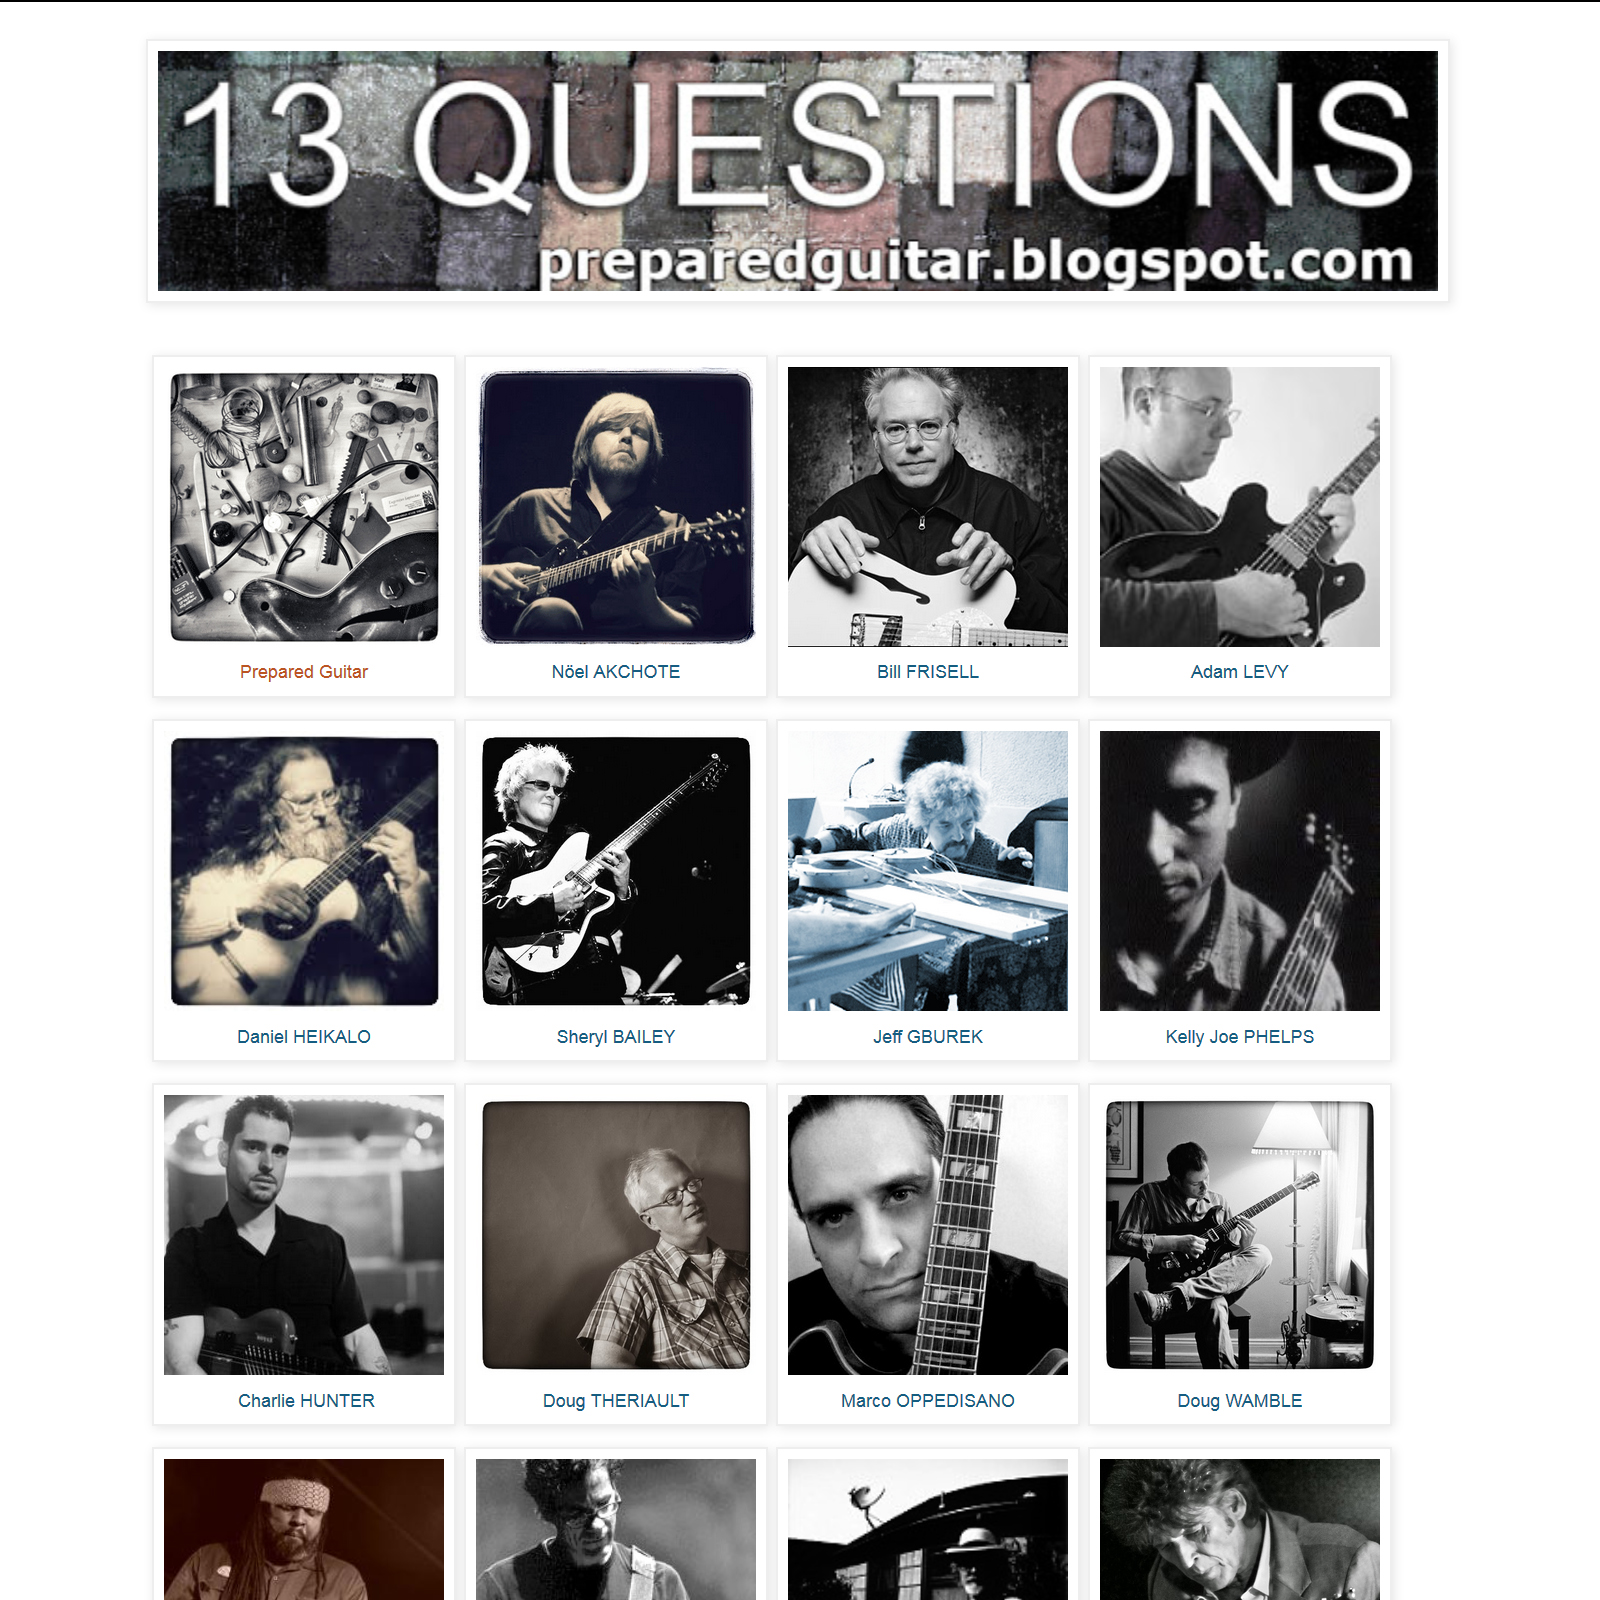 essential s in modern guitar through interviews the kelly joe phelps charlie hunter doug theriault marco oppedisano doug wamble a youngblood hart jon herington mike coykendall richard pinhas